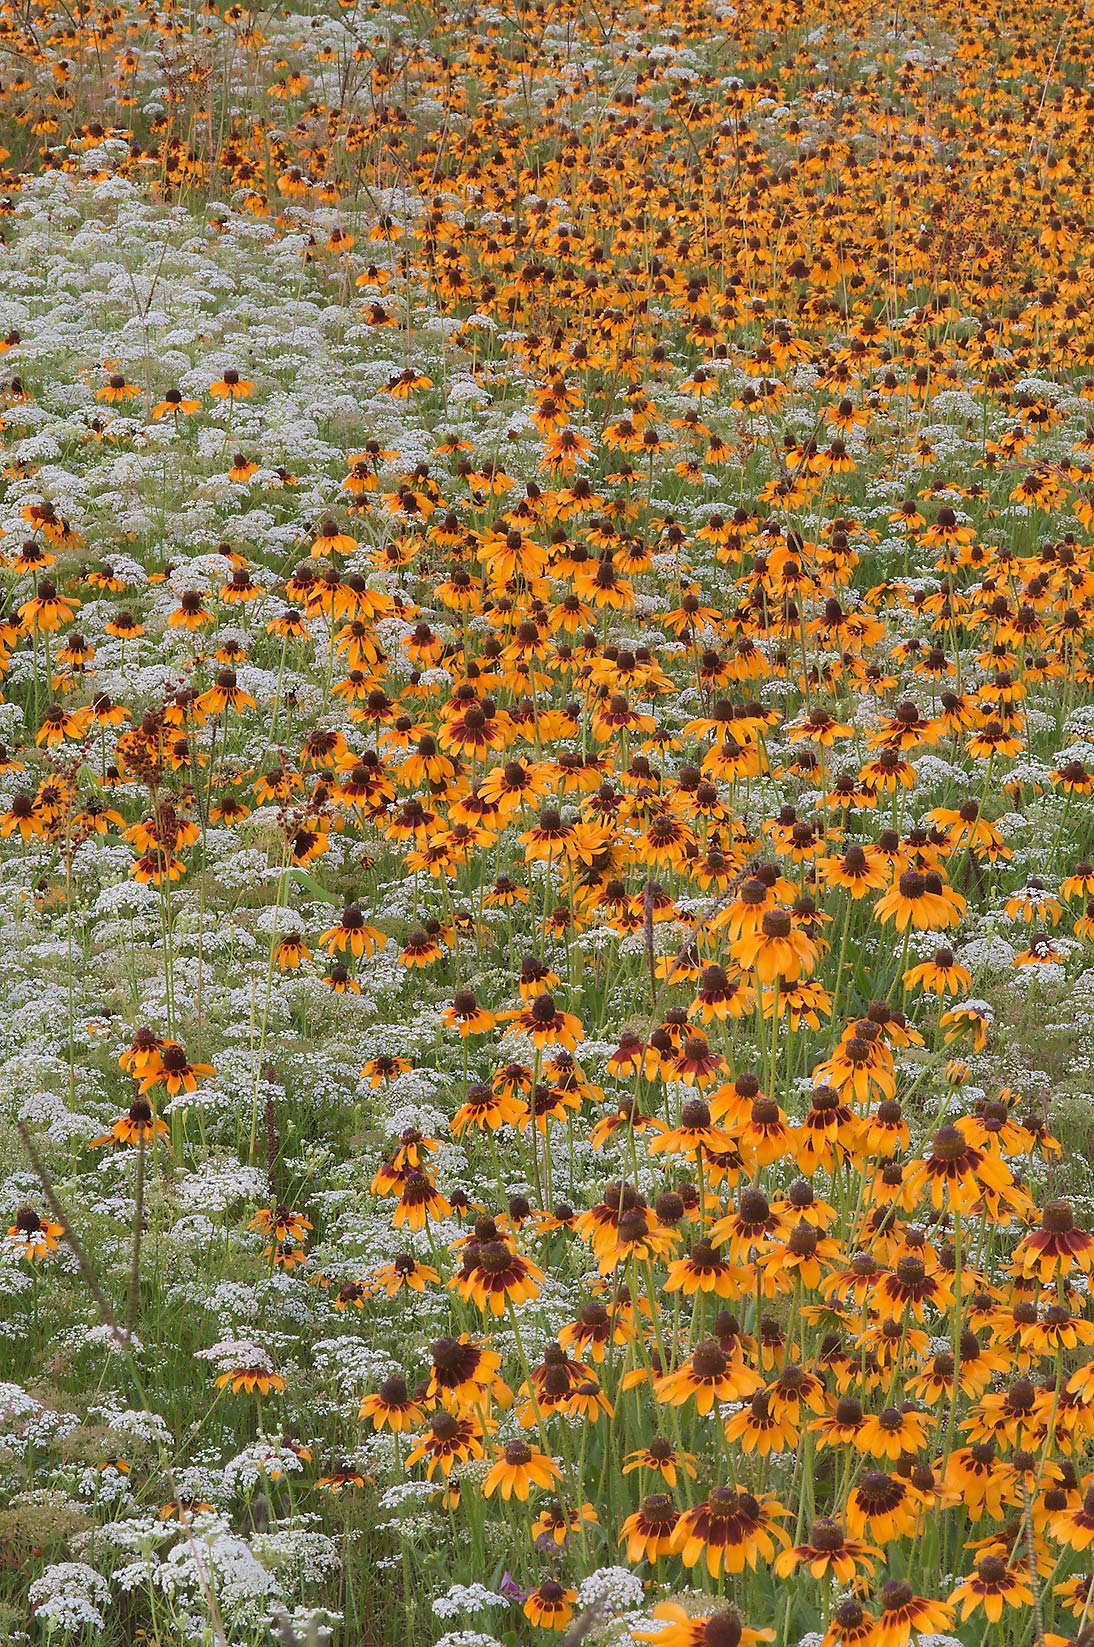 Field of Black-eyed susan (Rudbeckia hirta) and...Creek Park. College Station, Texas